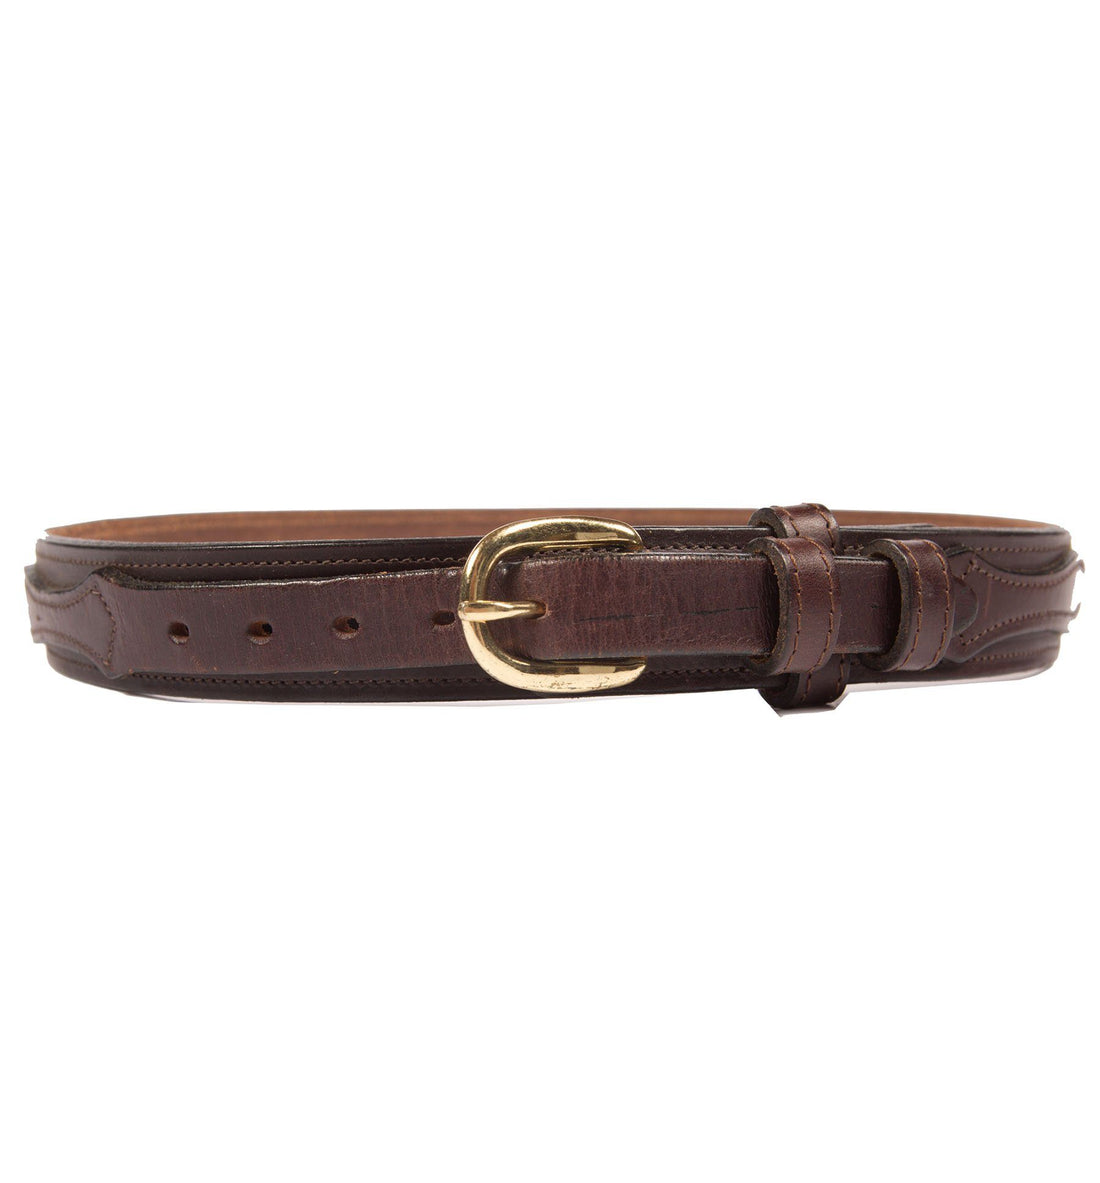 70's Circle y of Yoakman Brown Belt - Vintage - Iron and Resin